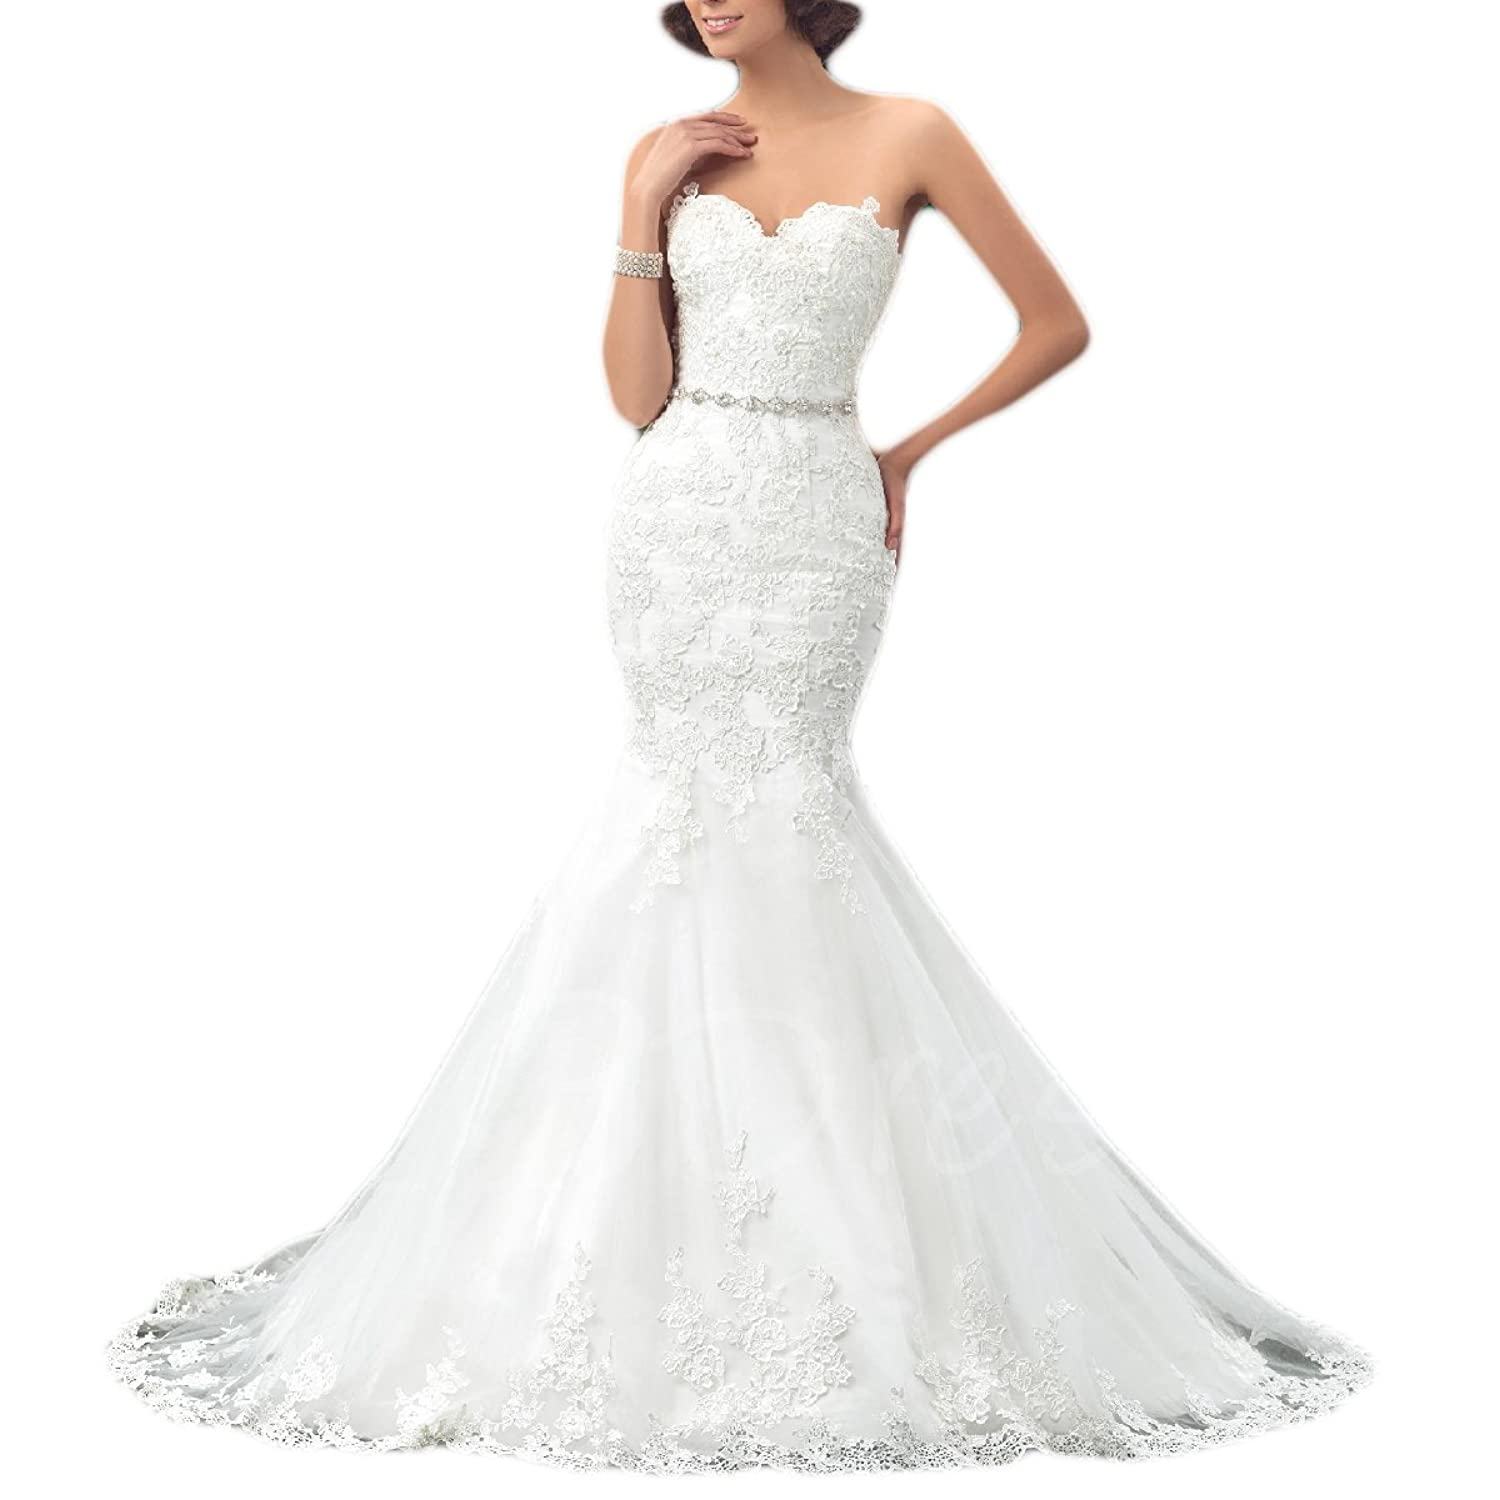 Maternity Wedding Dress Rental